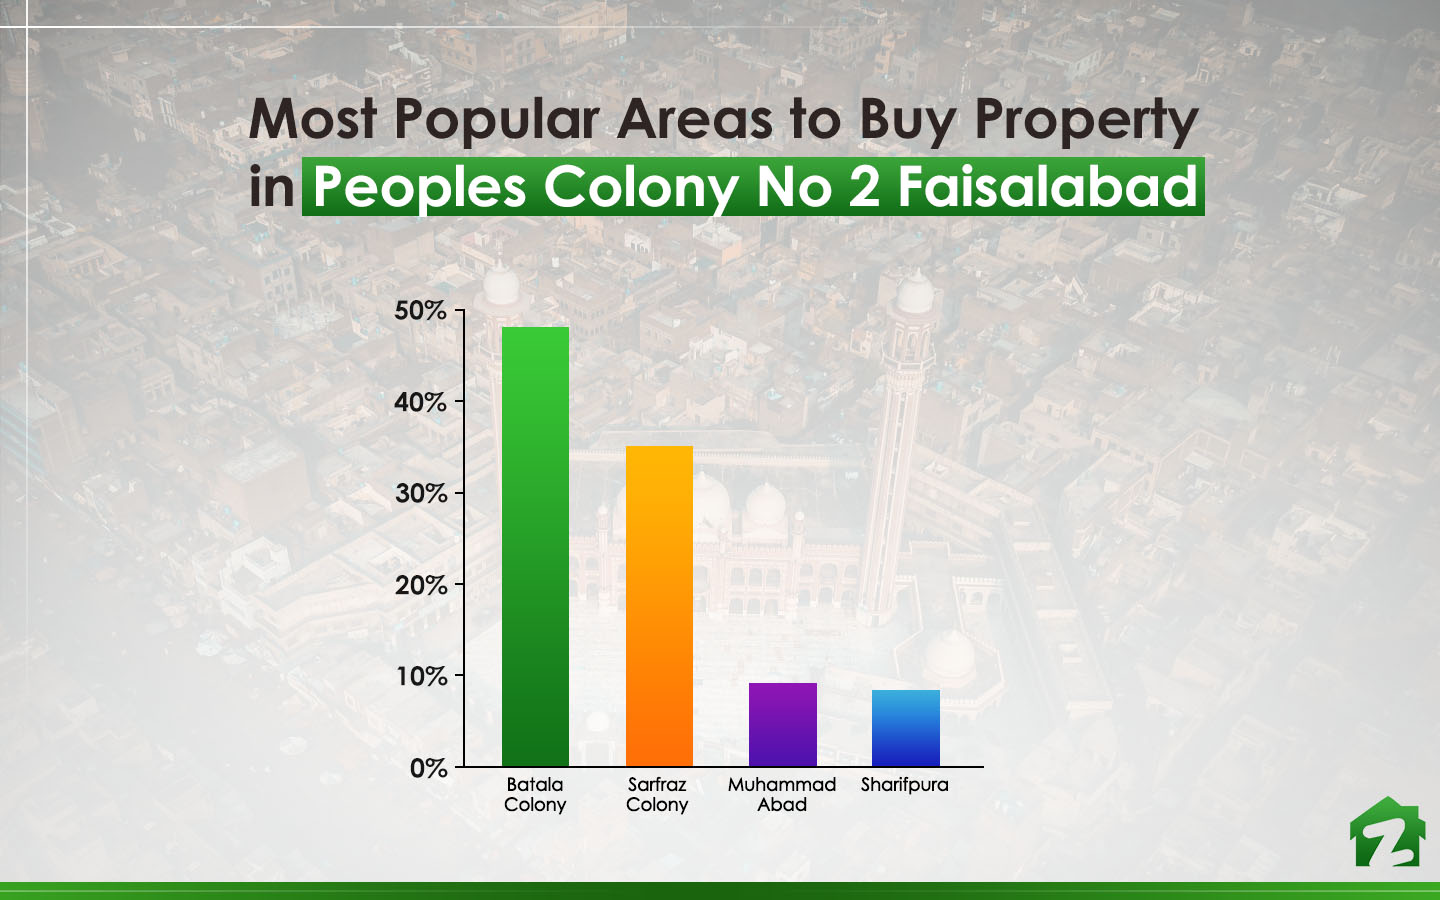 when it comes to buying properties in Peoples Colony No 2, Batala Colony is really famous